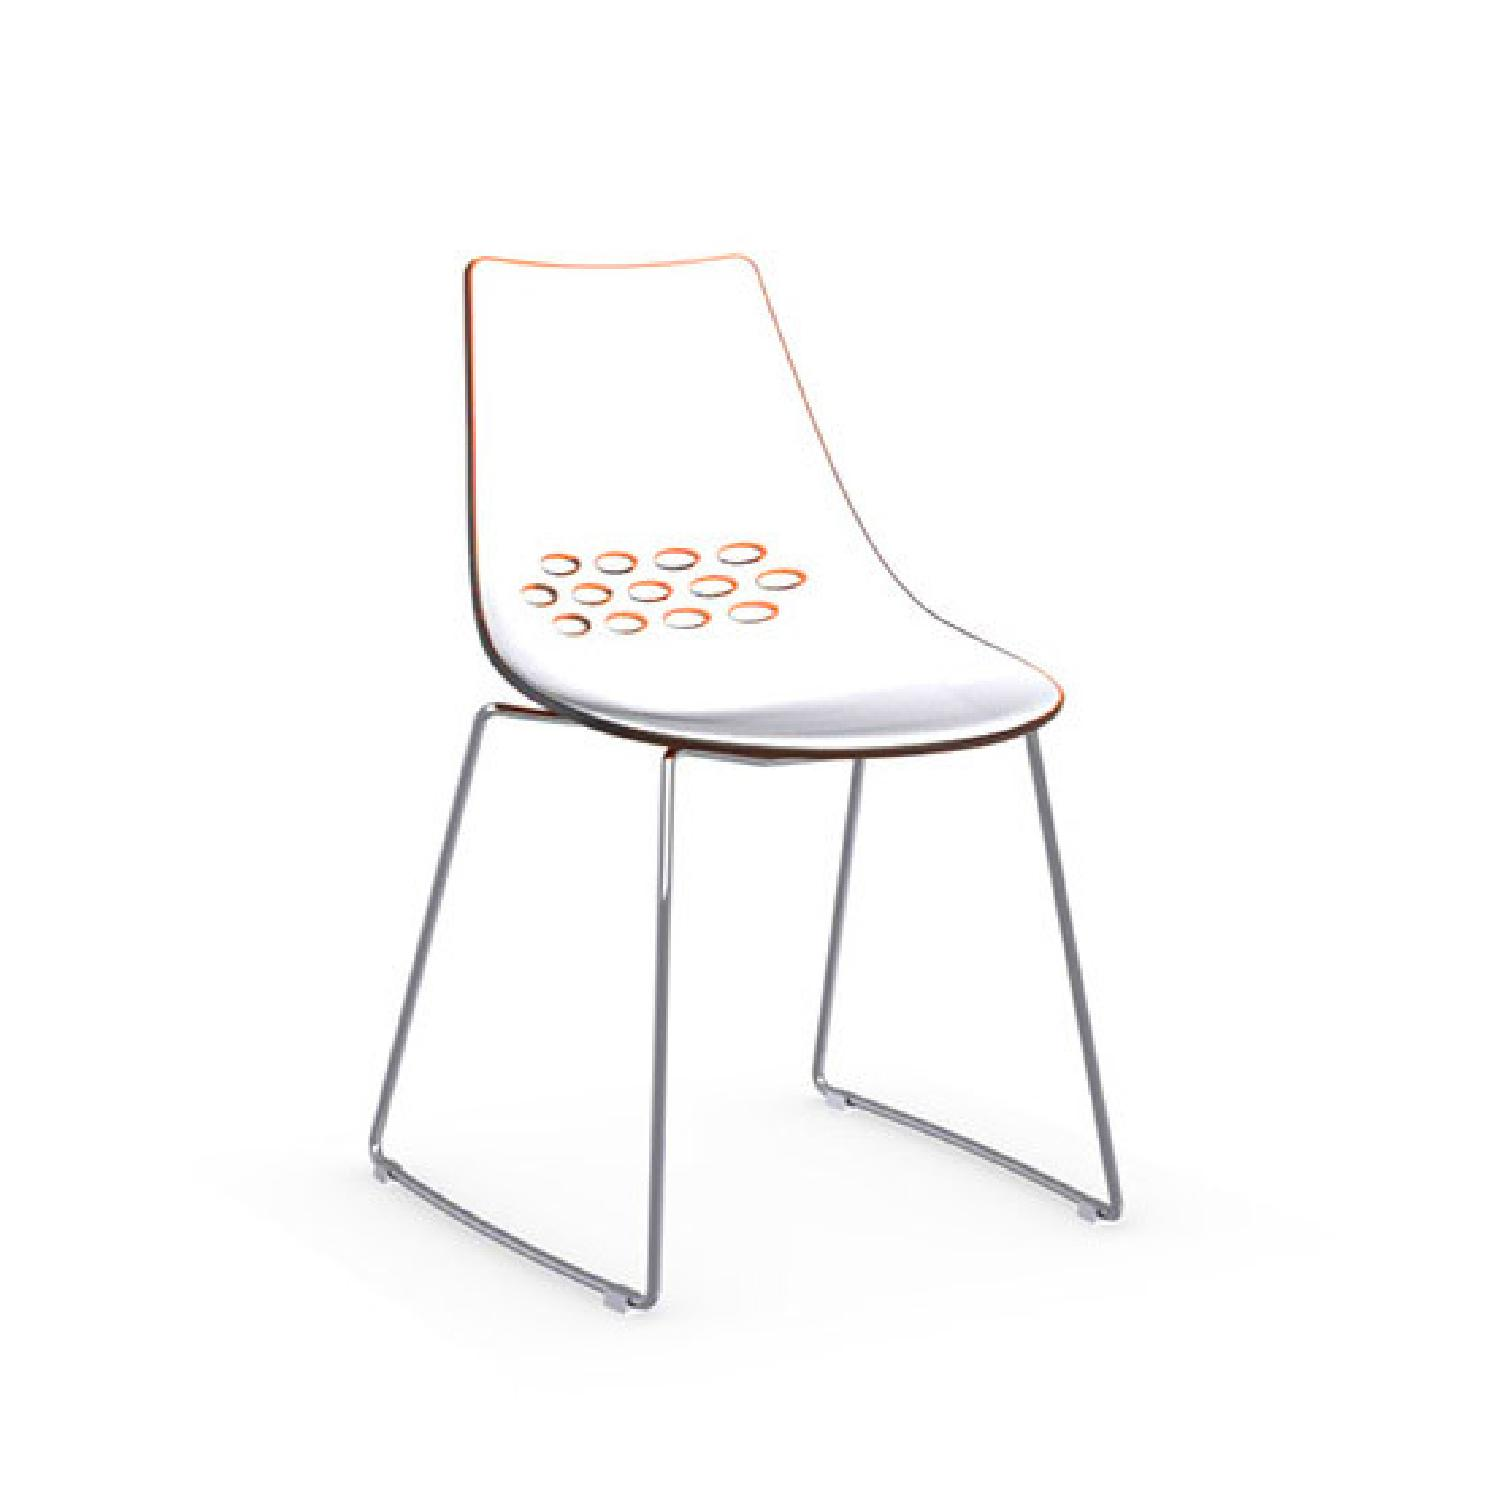 Calligaris Jam Chairs - image-0